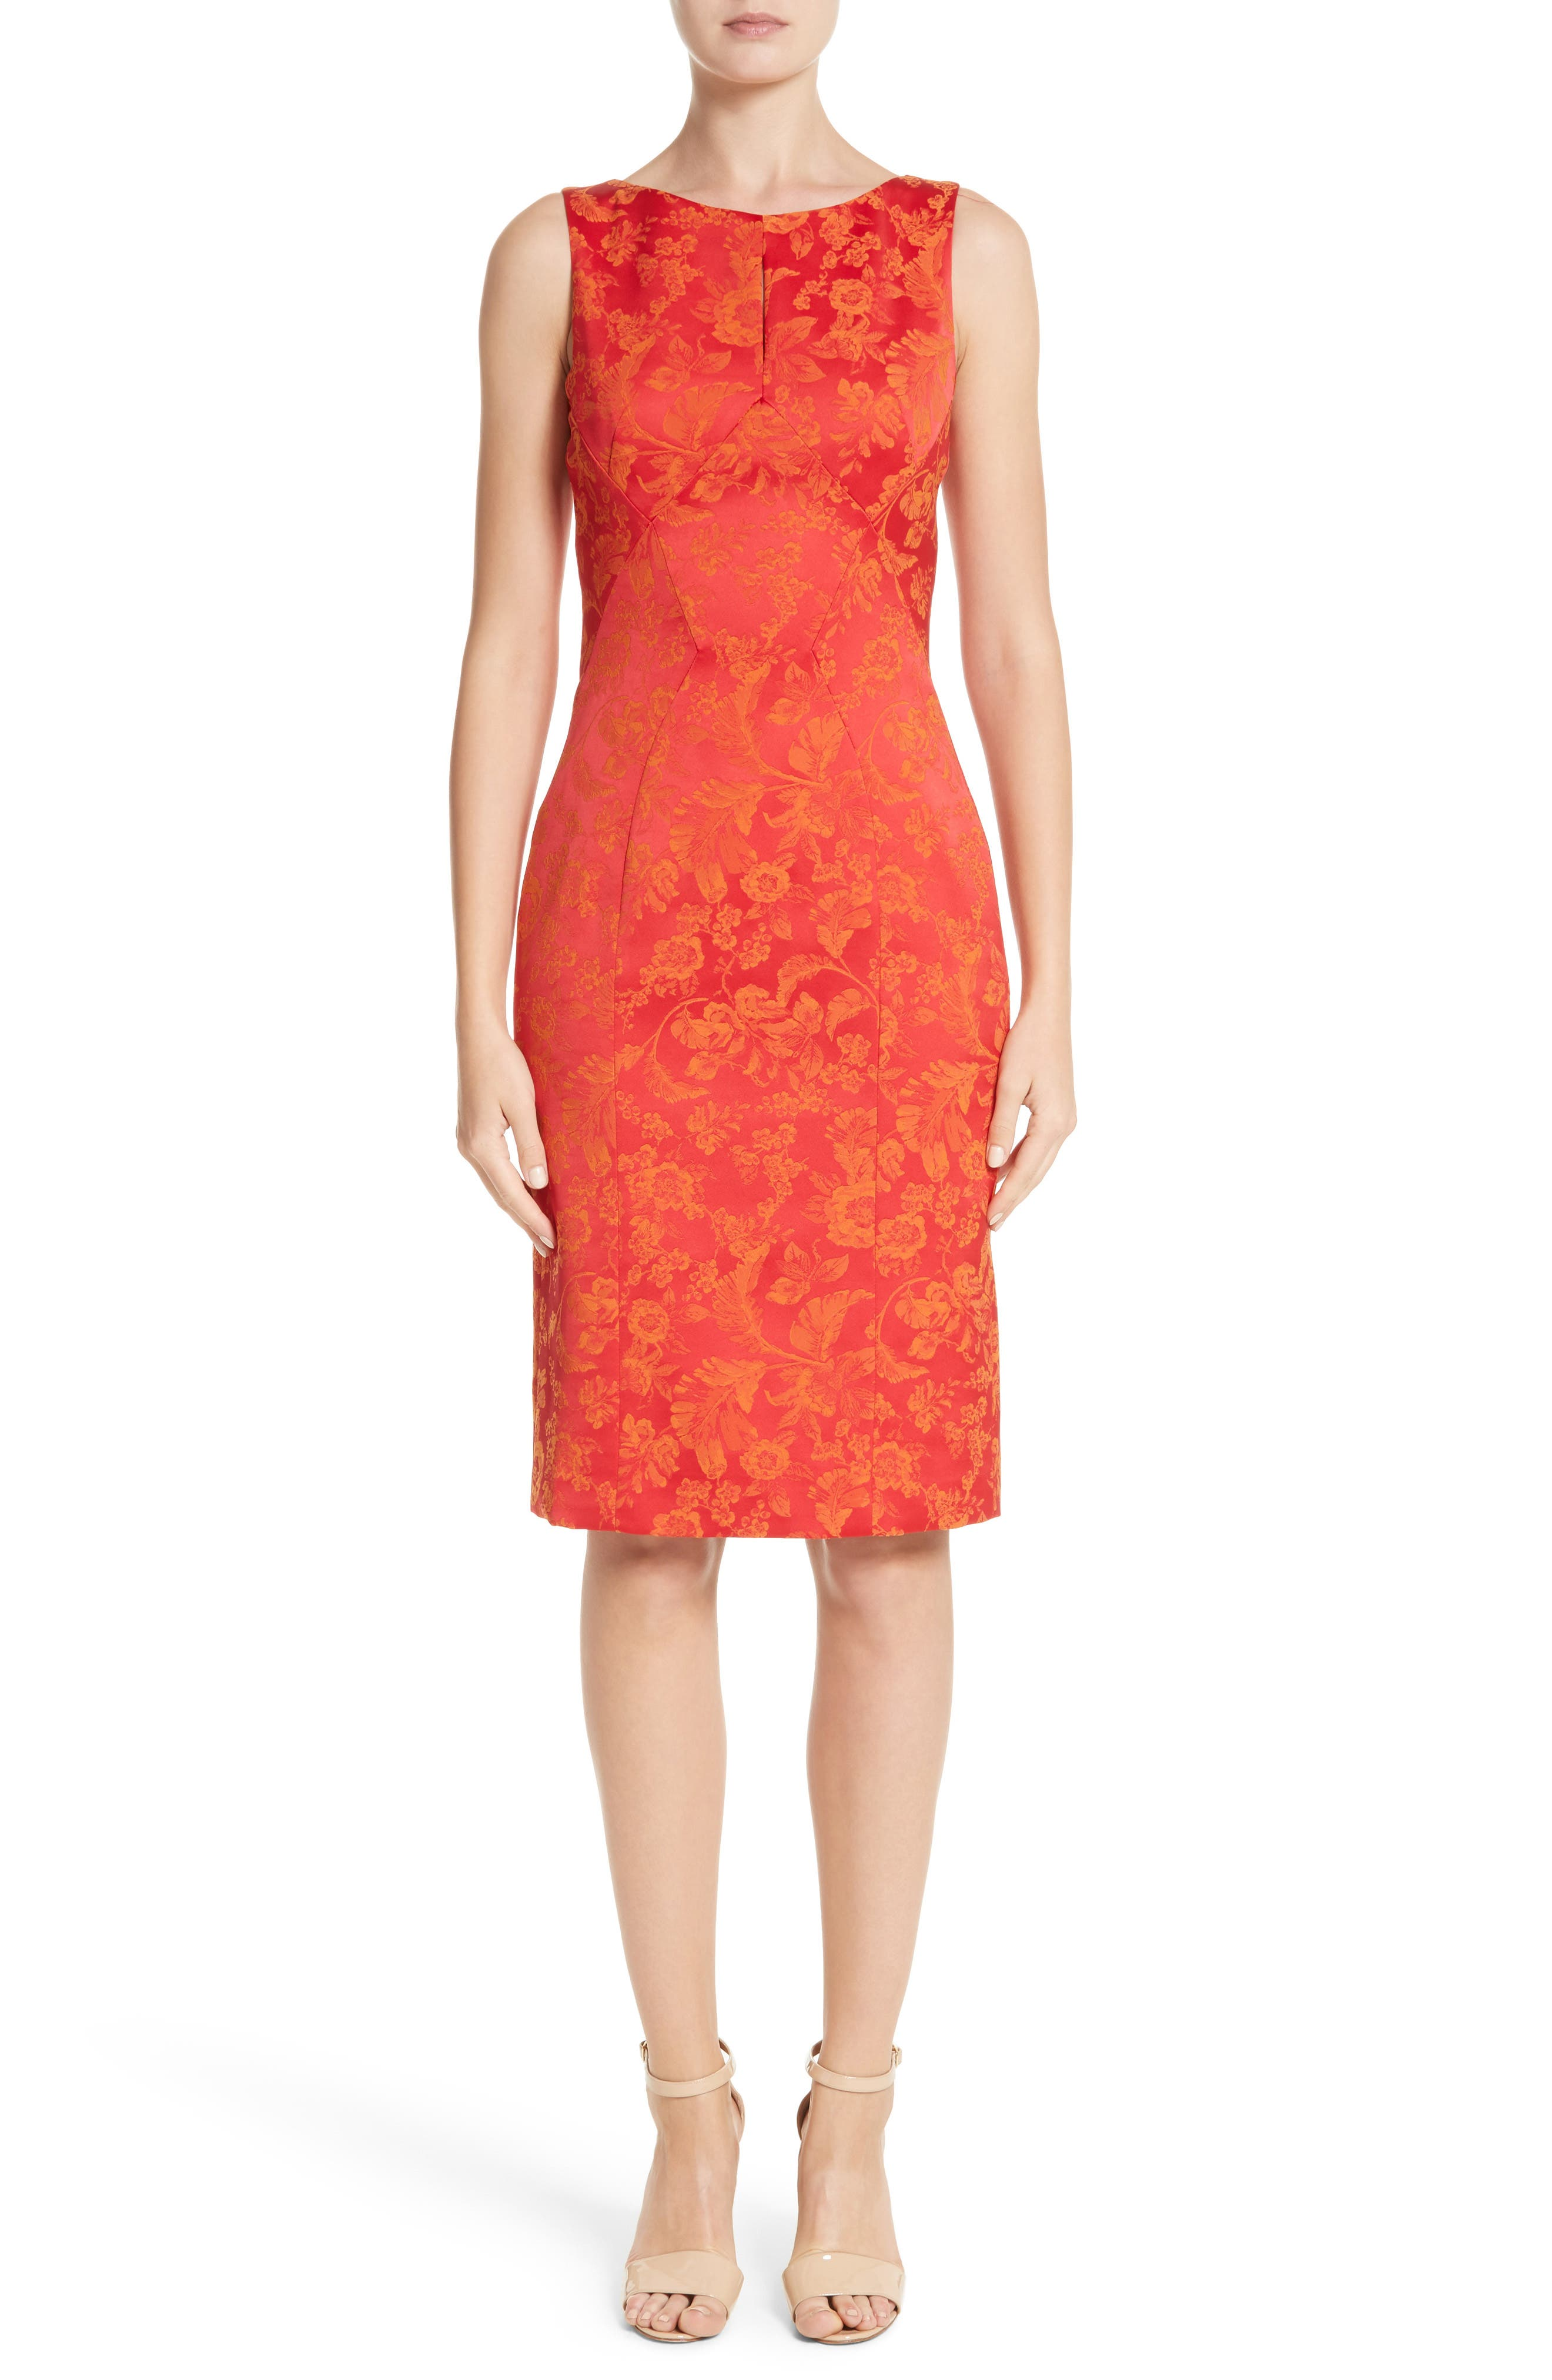 Zac Posen Floral Jacquard Sheath Dress